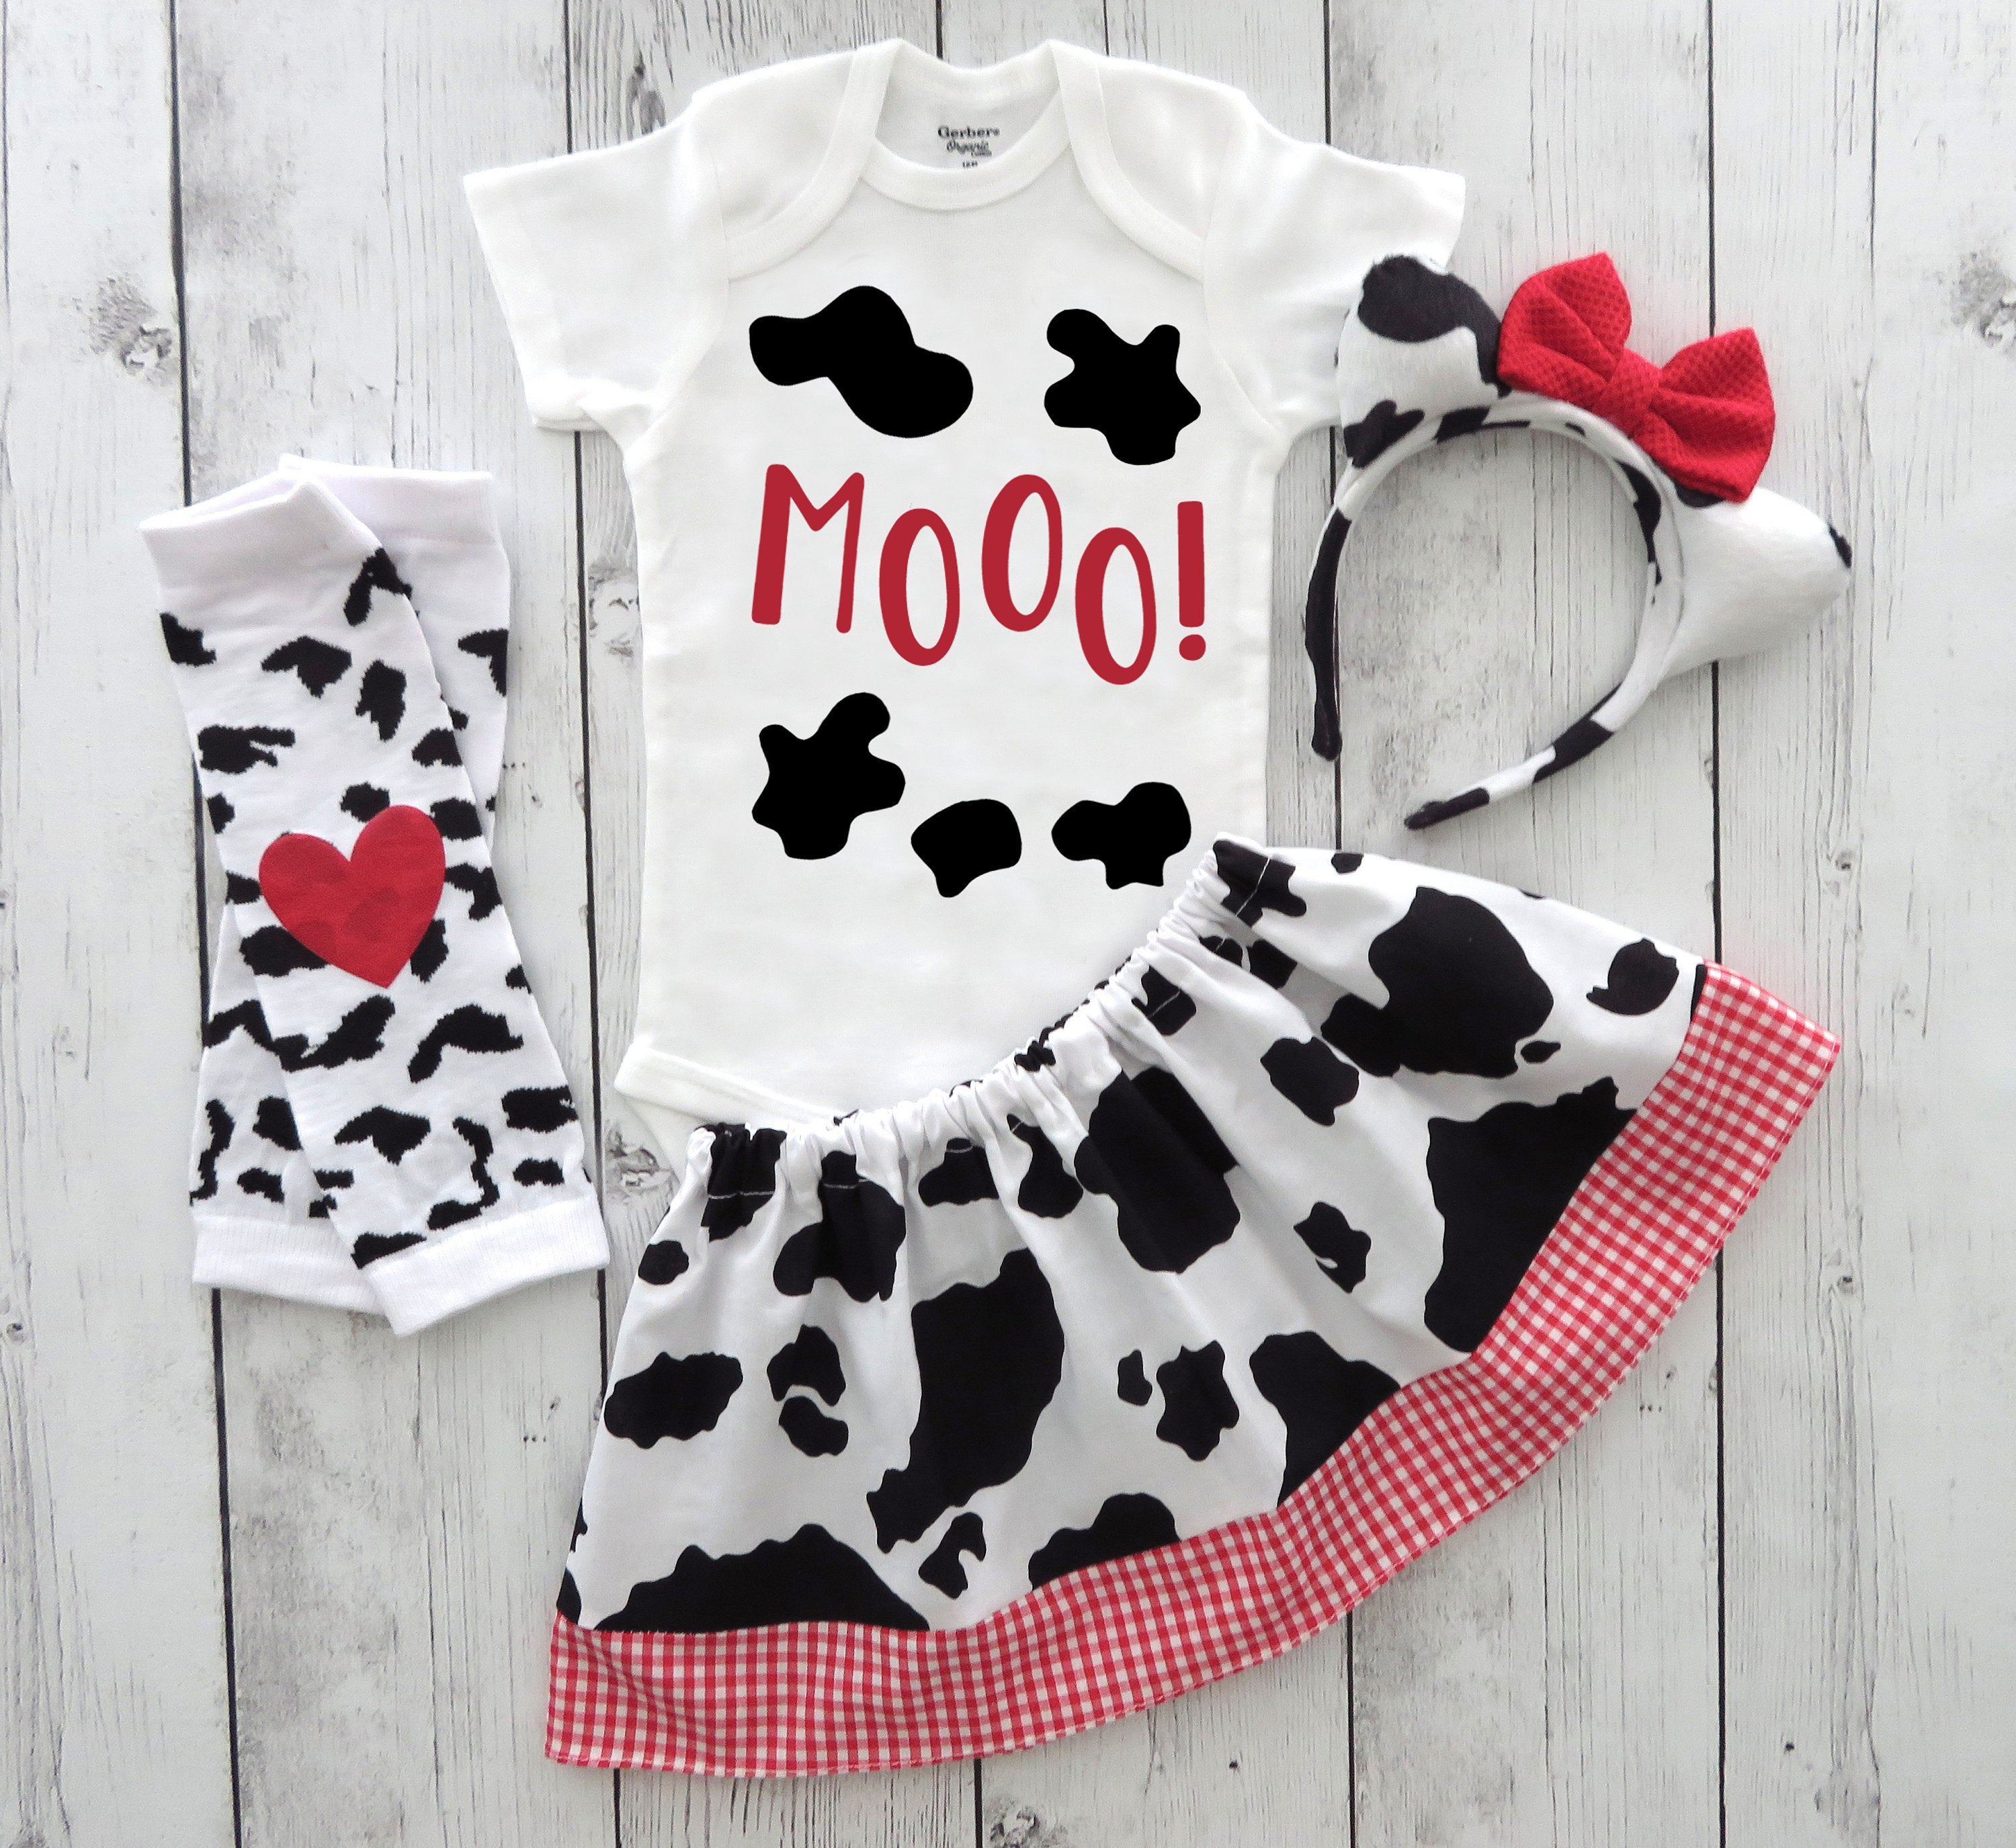 Cow Halloween Costume - toddler halloween costume girl, cute cow, first halloween, cow ears headband, cow costume, comfortable costume